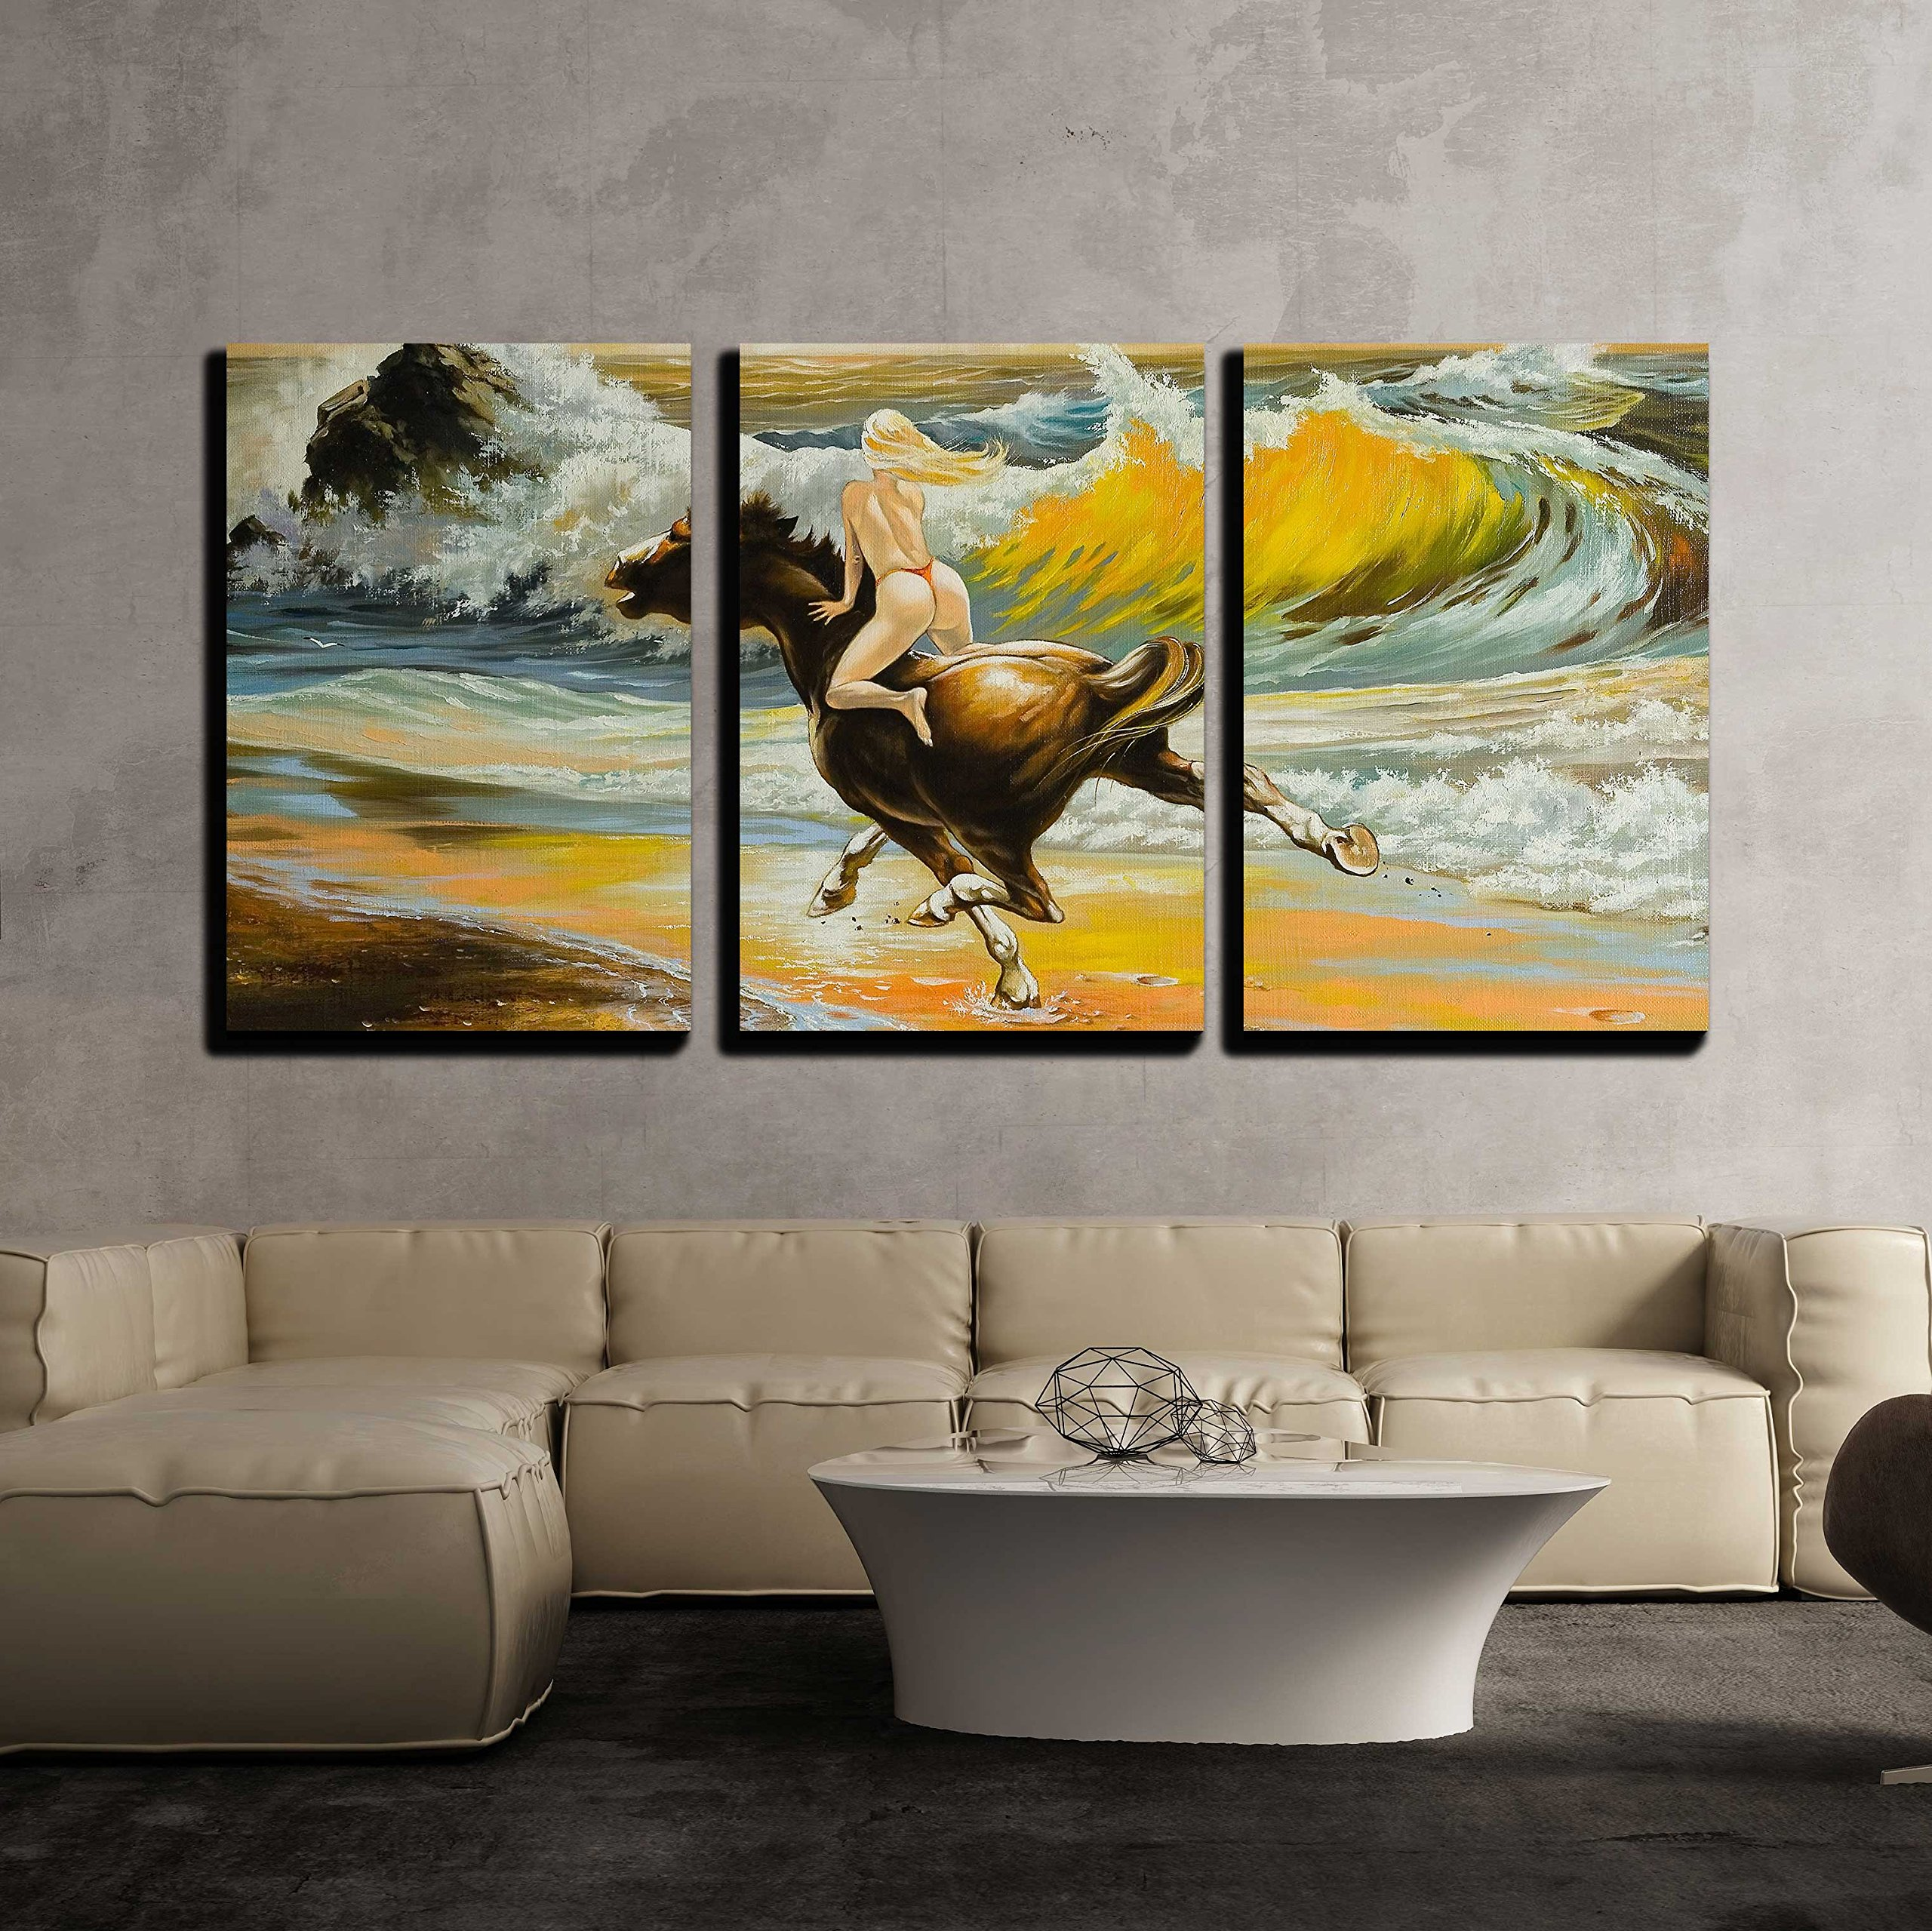 wall26 - 3 Piece Canvas Wall Art - The Girl Skipping on a Horse on Seacoast - Modern Home Decor Stretched and Framed Ready to Hang - 16''x24''x3 Panels